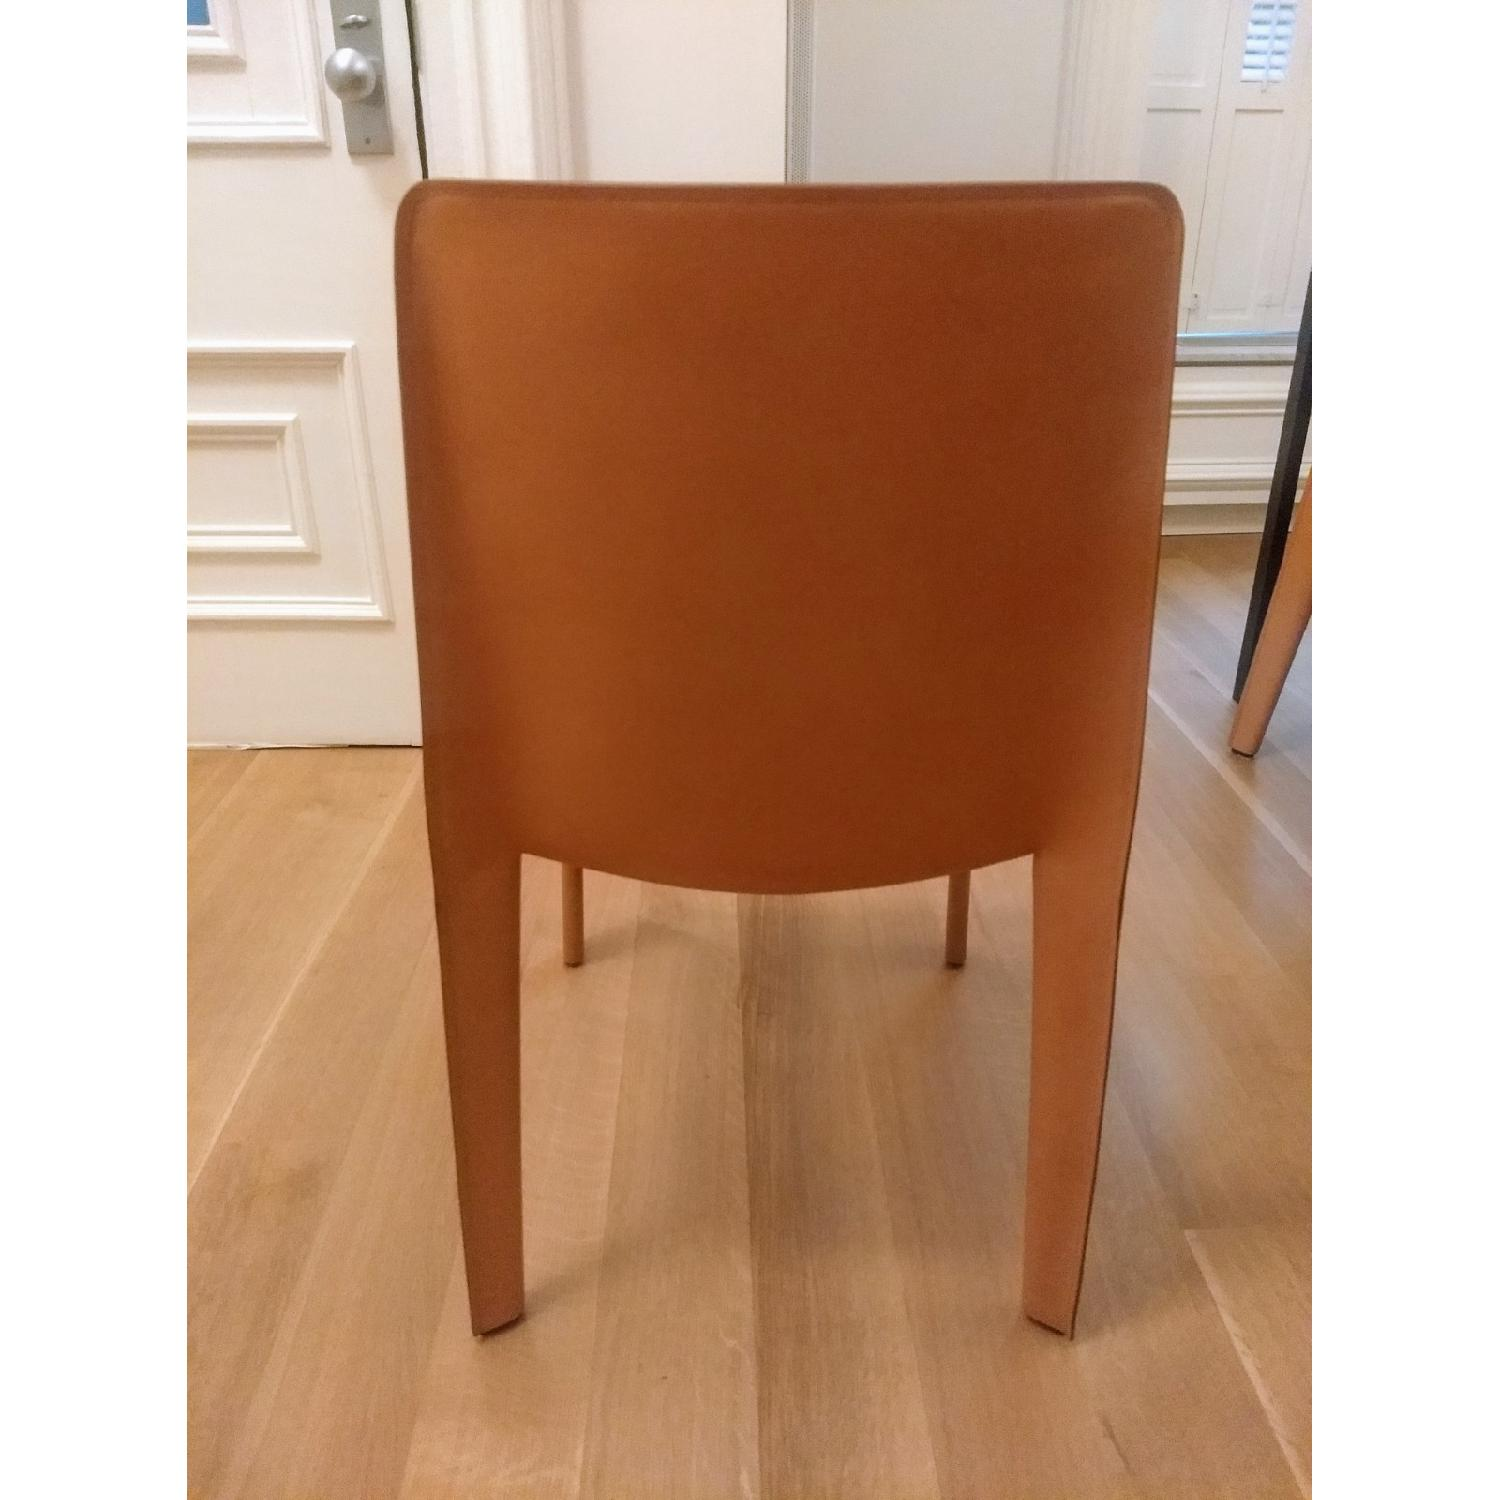 B&B Italia Doyl Dining Chair in Natural Leather-3